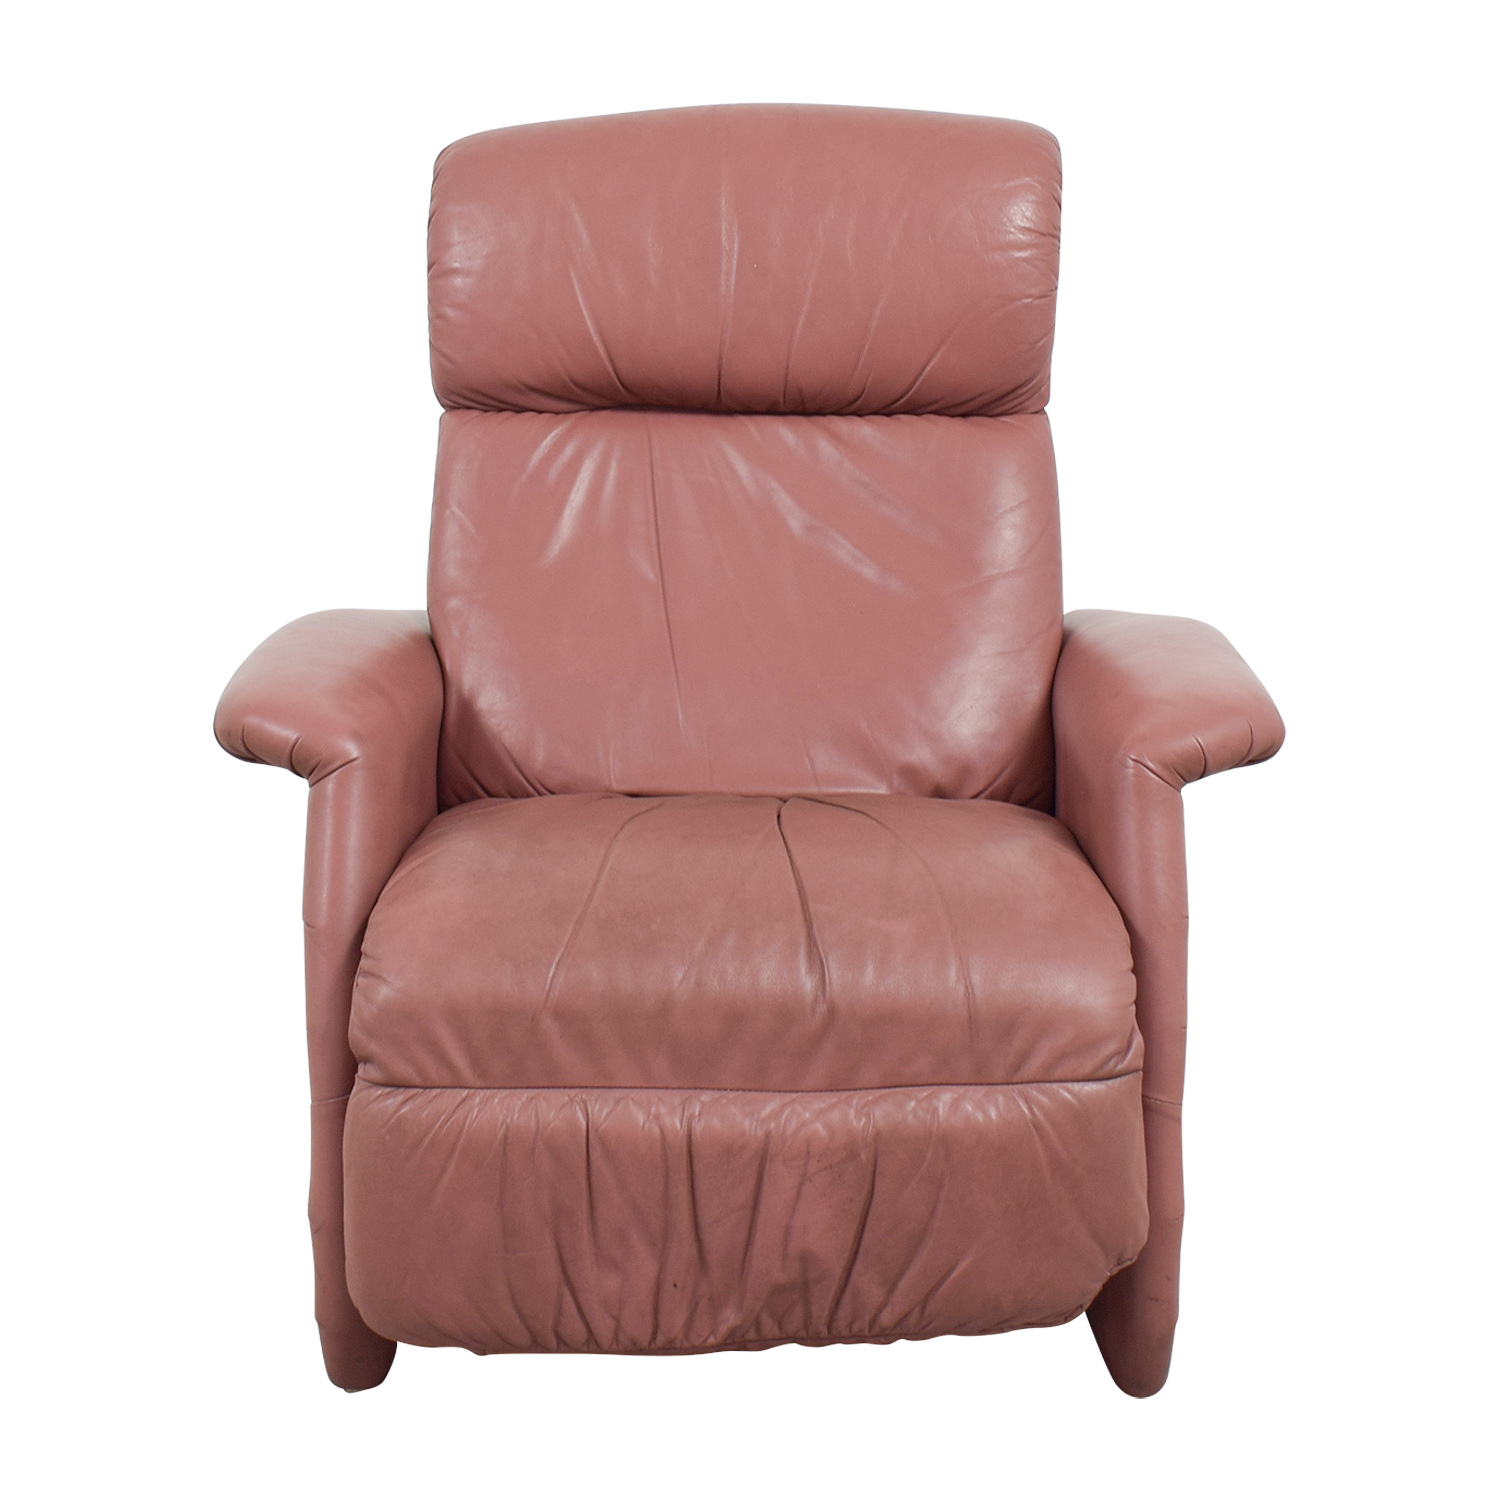 Salmon Leather Recliner nj